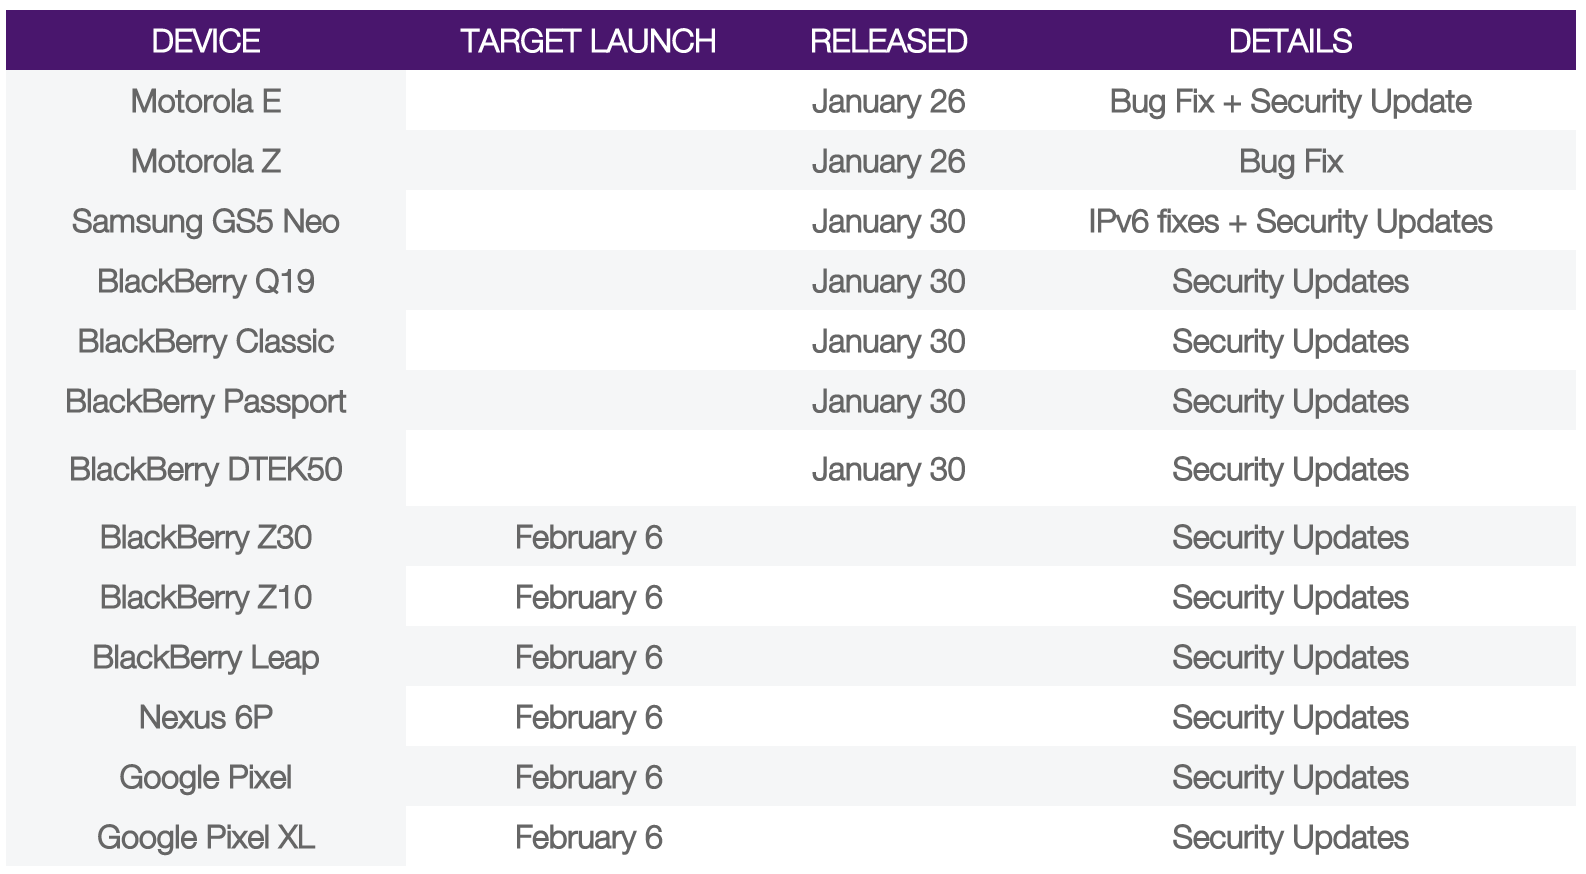 Telus February operating system upgrade schedule